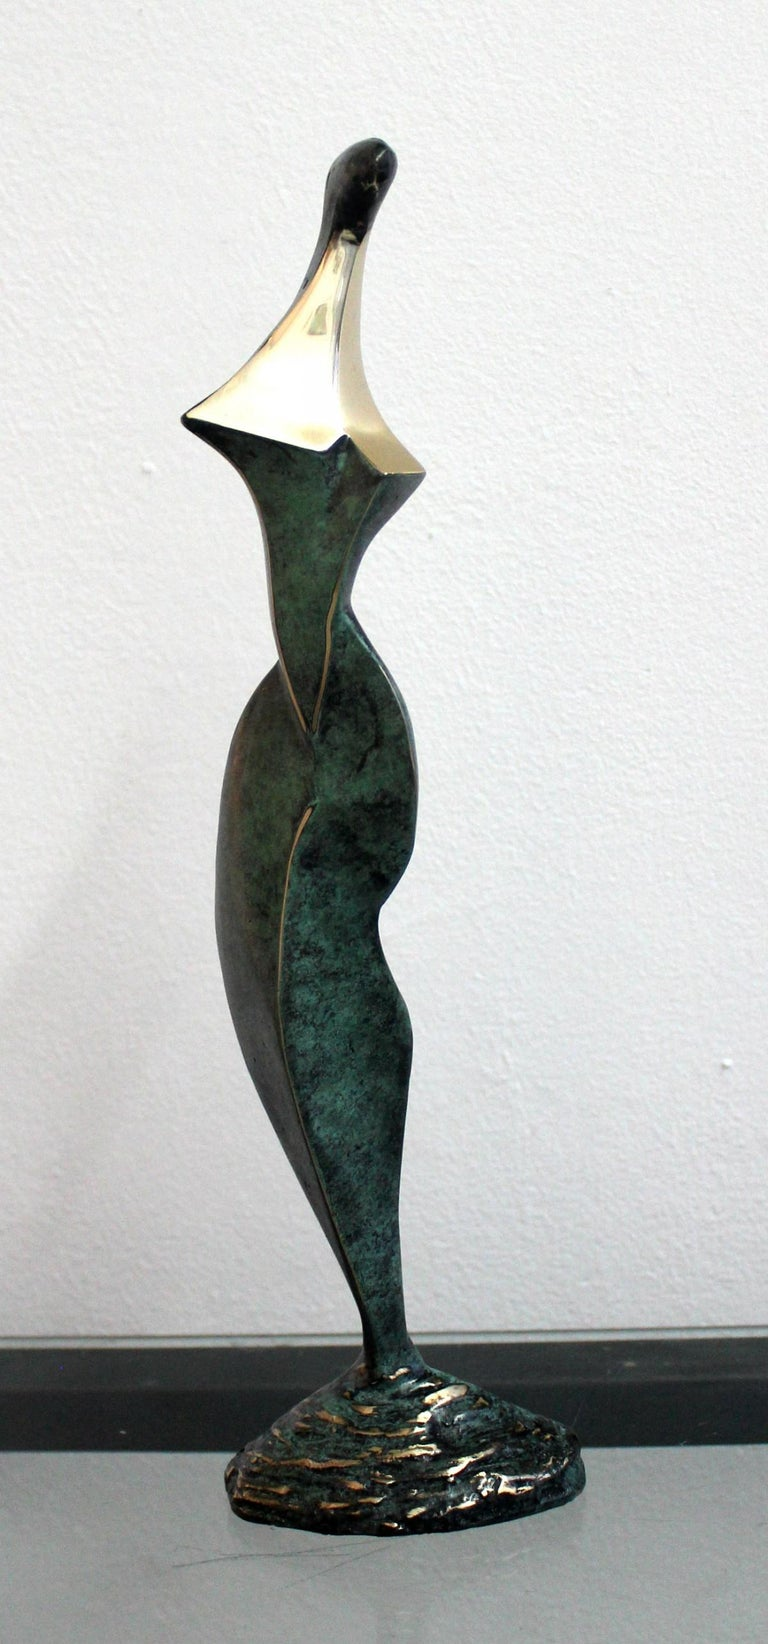 Stanisław Wysocki Figurative Sculpture - Dame - XXI Century, Contemporary Bronze Sculpture, Abstract, Figurative, Nude